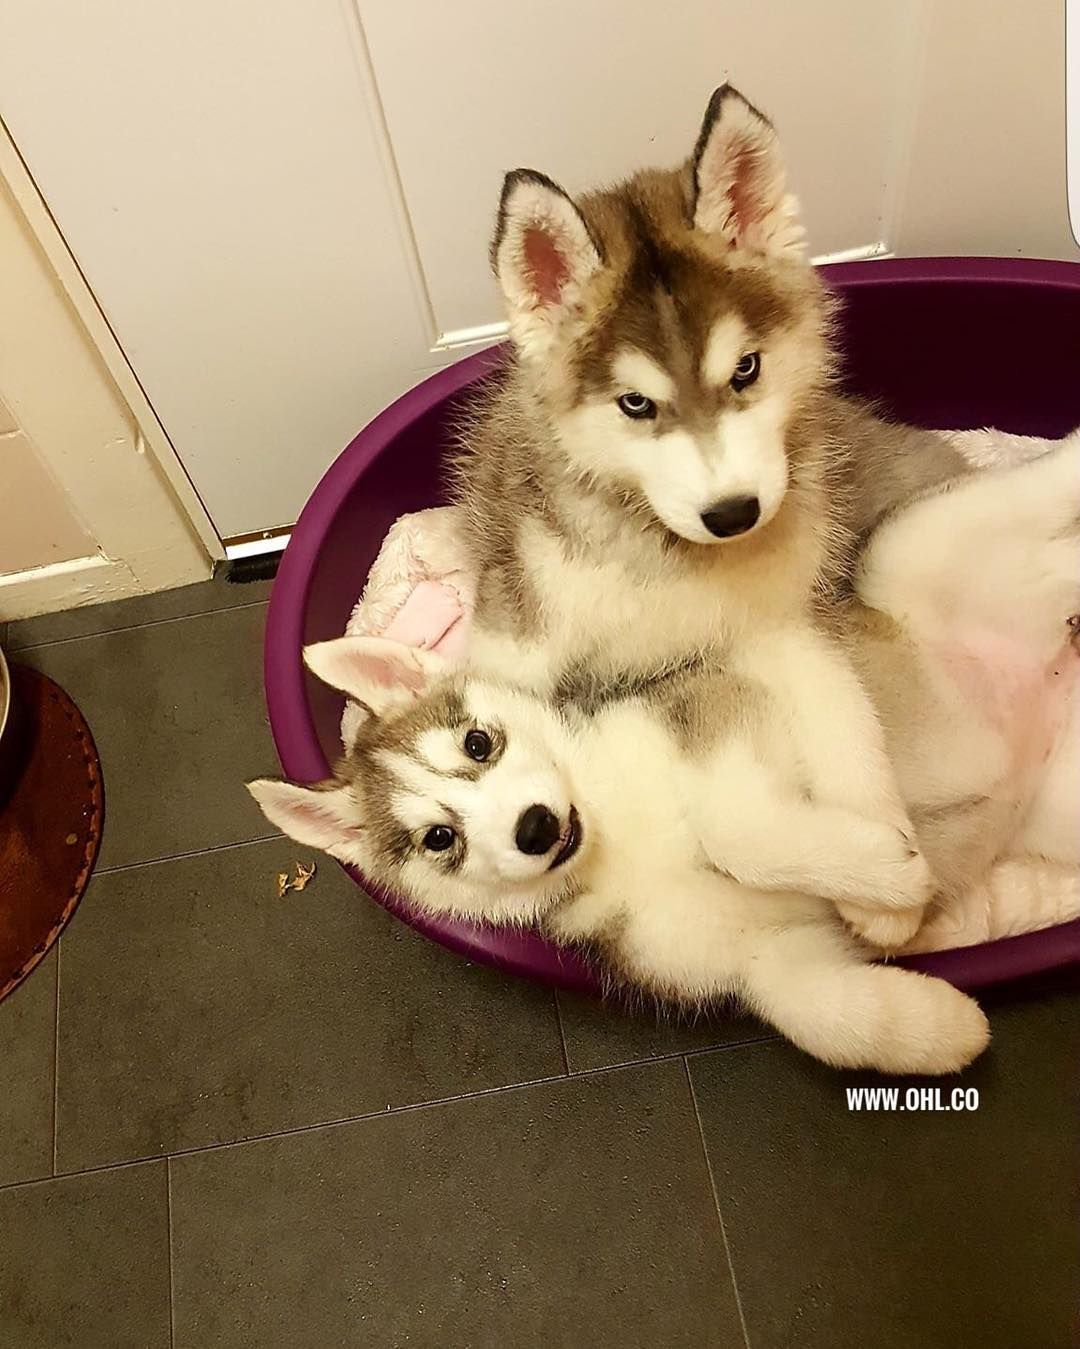 Officialhuskylovers Husky Puppy Dogs Ohl Husky Lovers